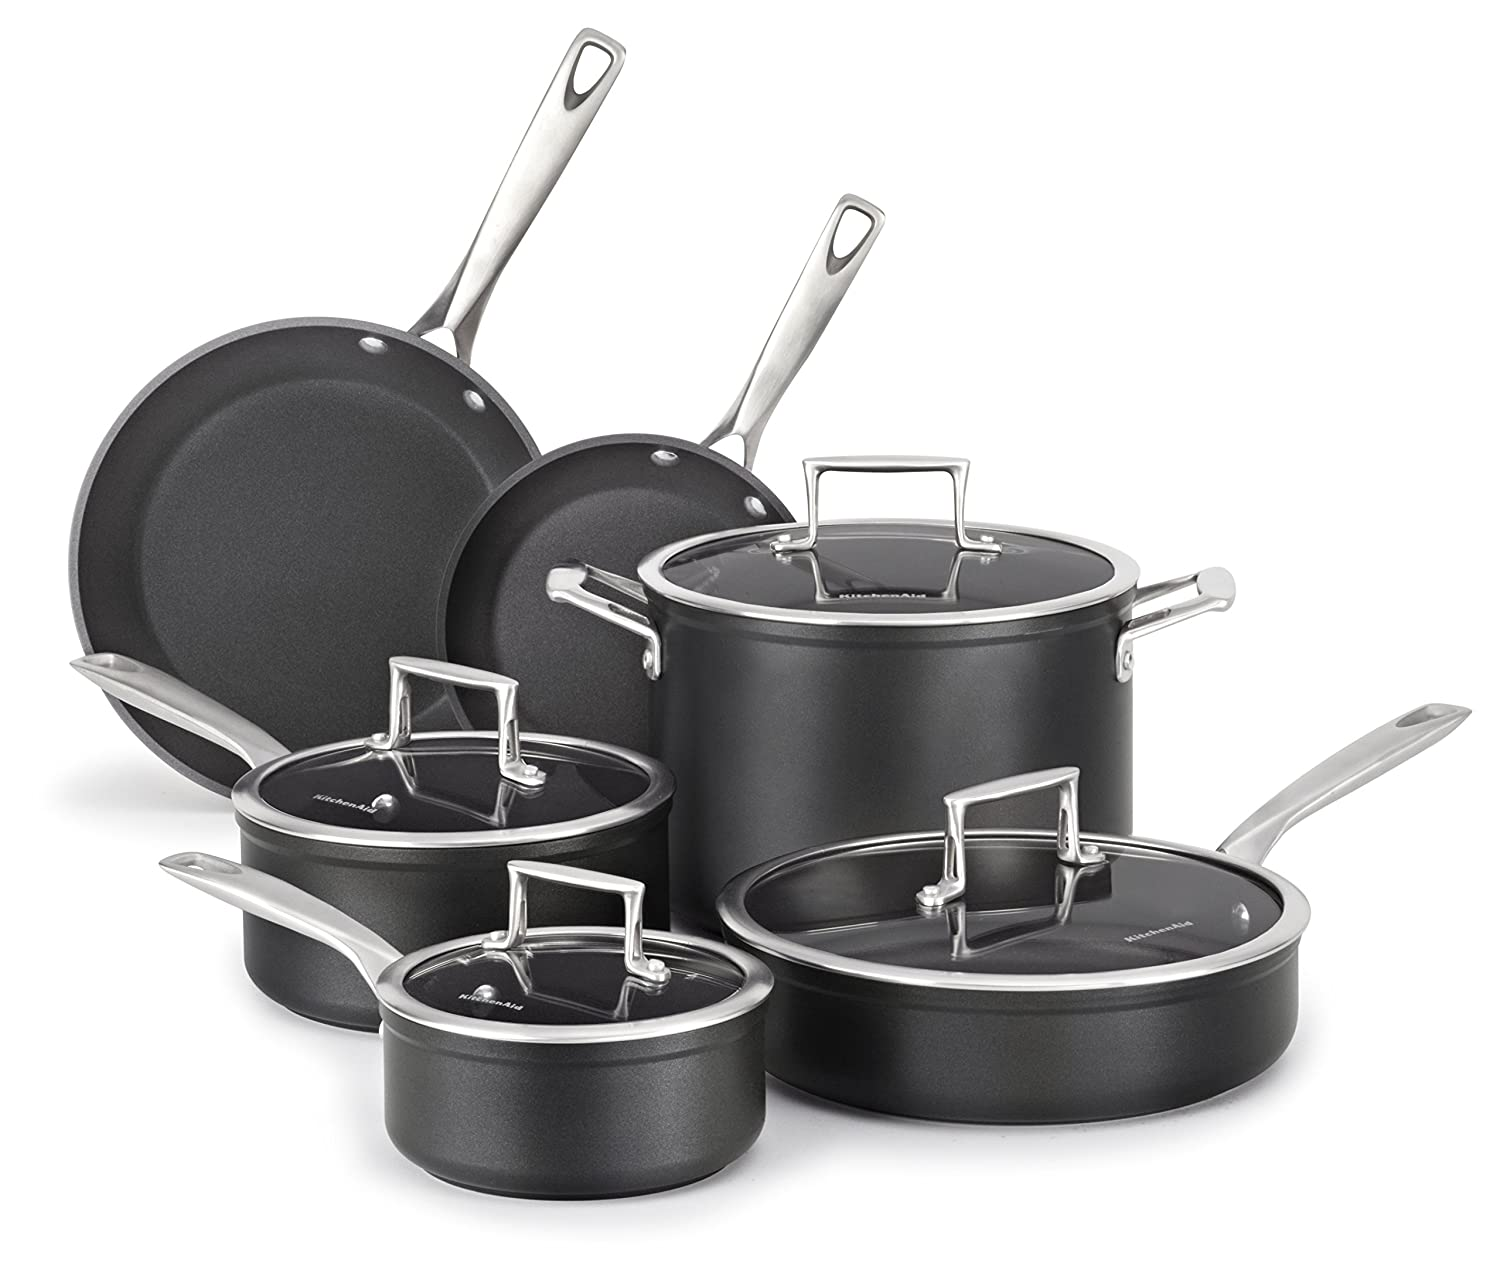 KitchenAid KCH2S10KM Professional Hard Anodized Nonstick 10-Piece Cookware Set - Black Via Amazon